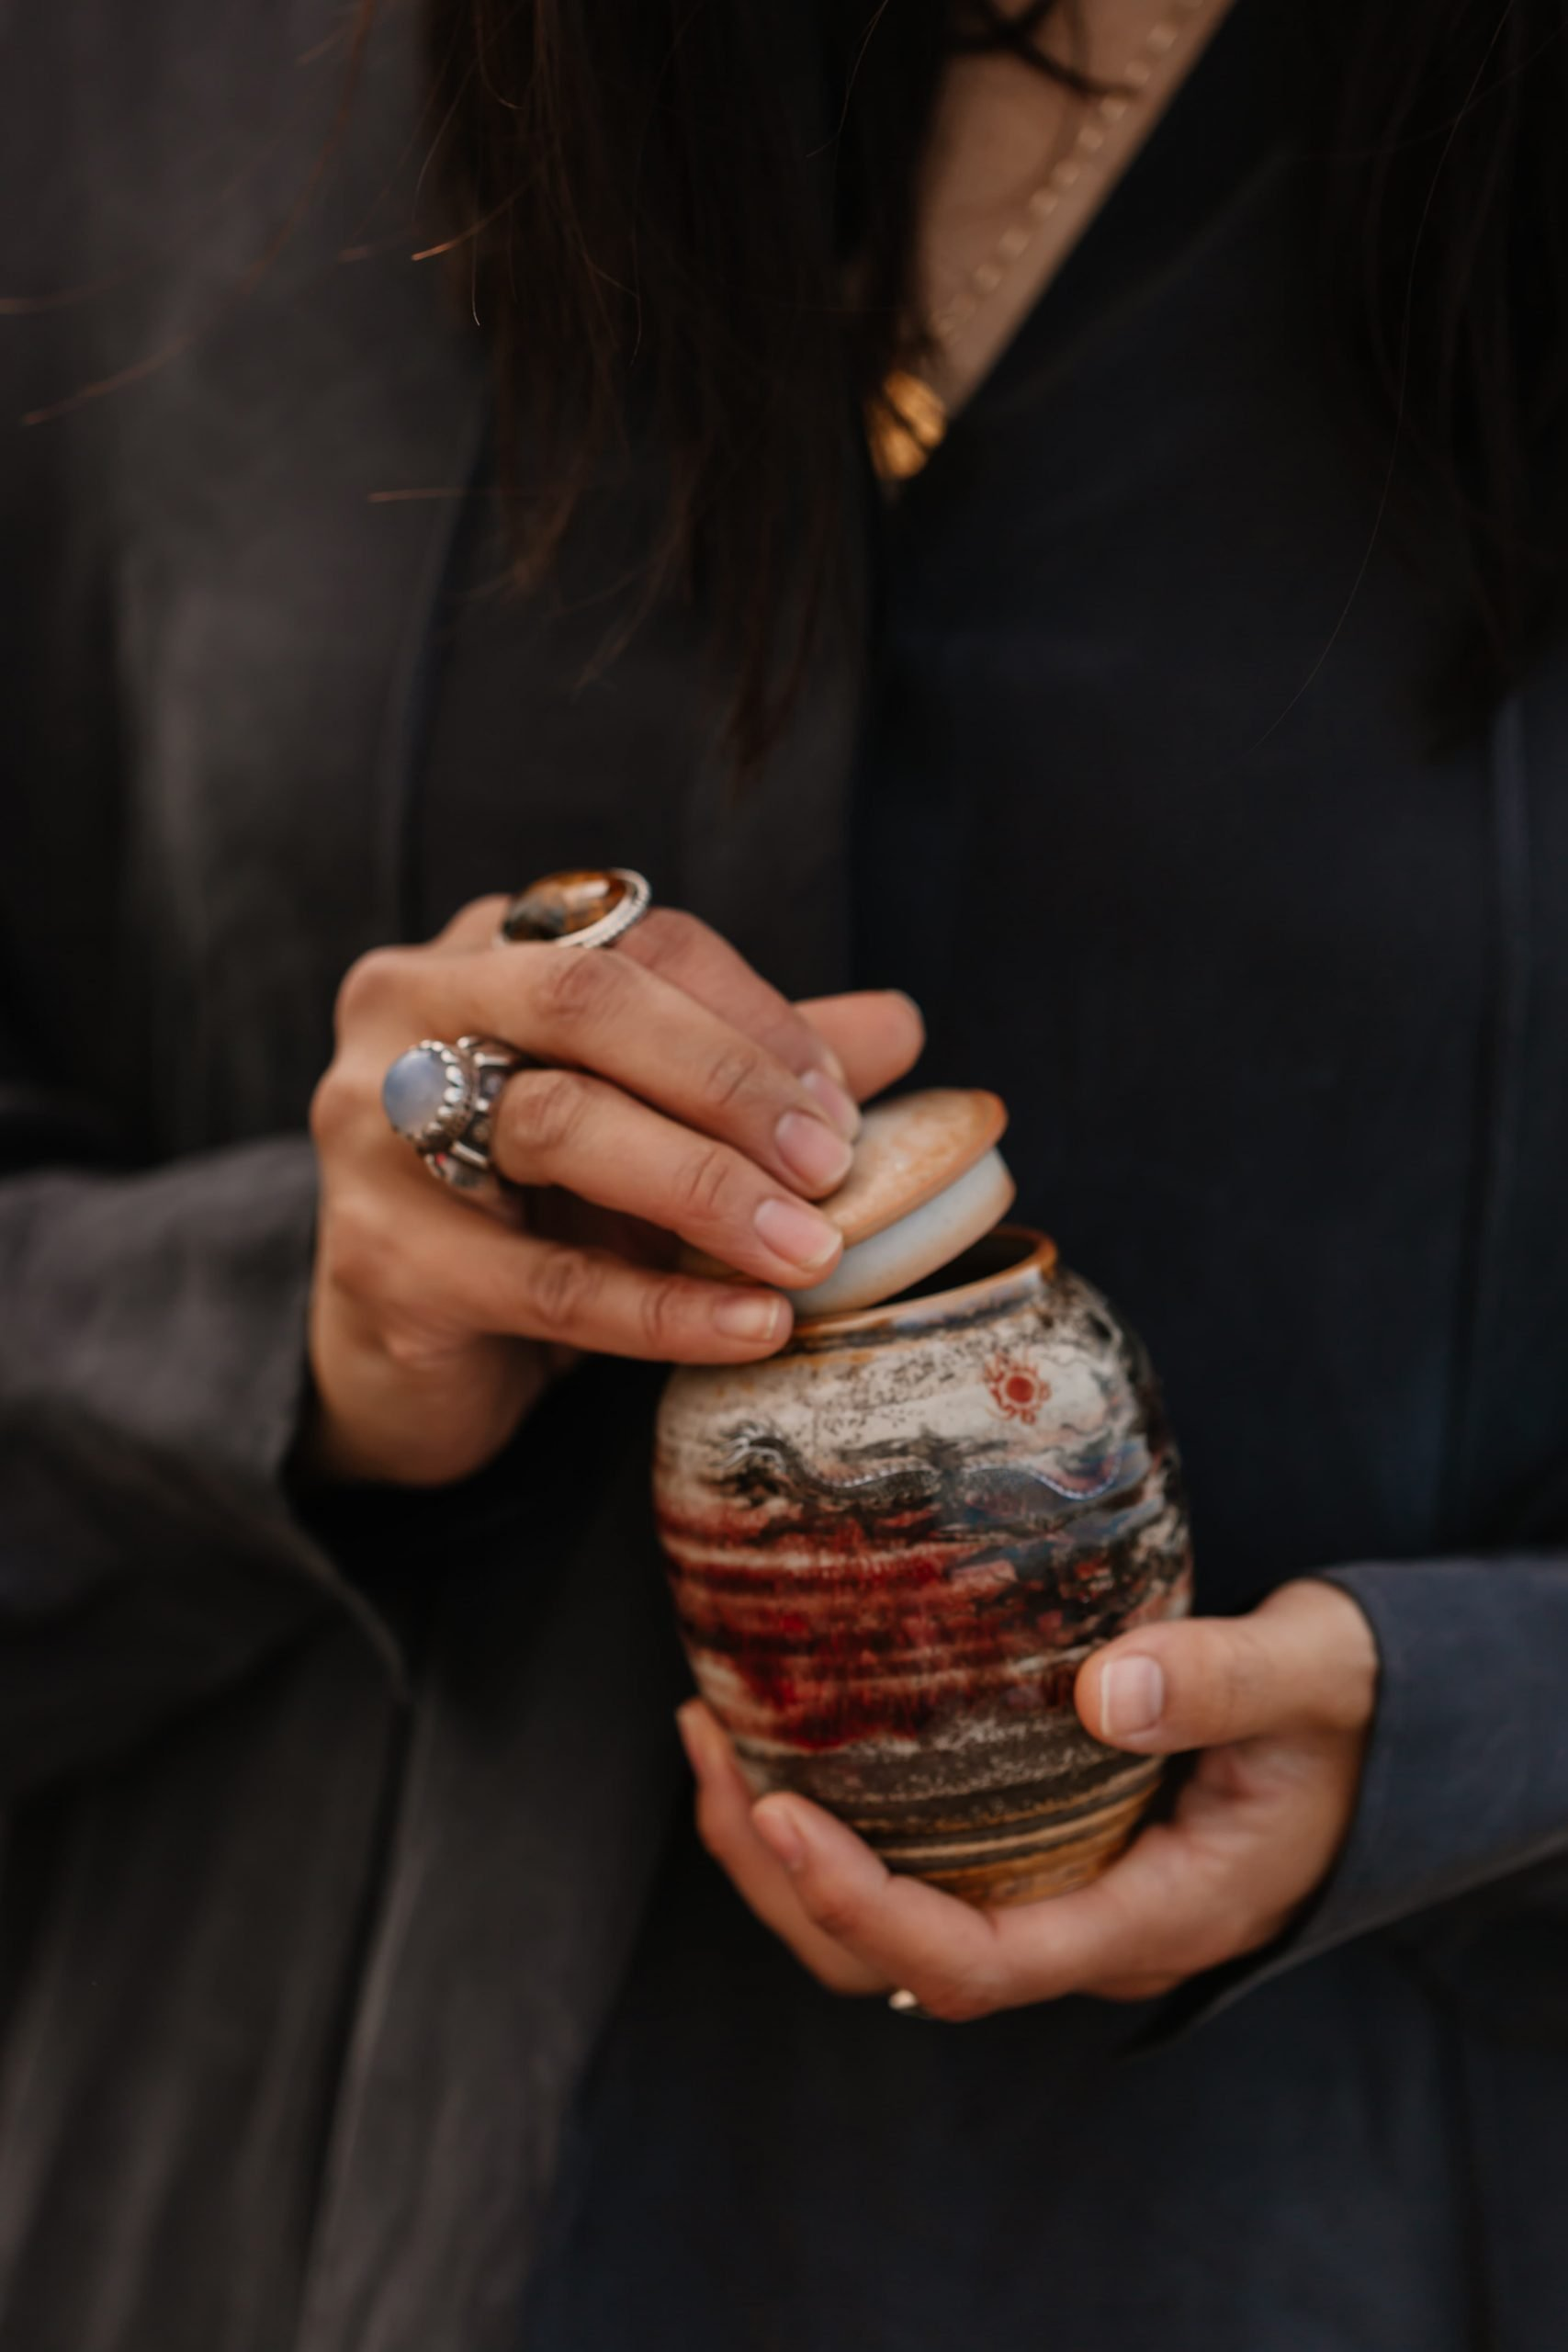 Asian woman's hands holds a ceramic jar filled with magickal energy